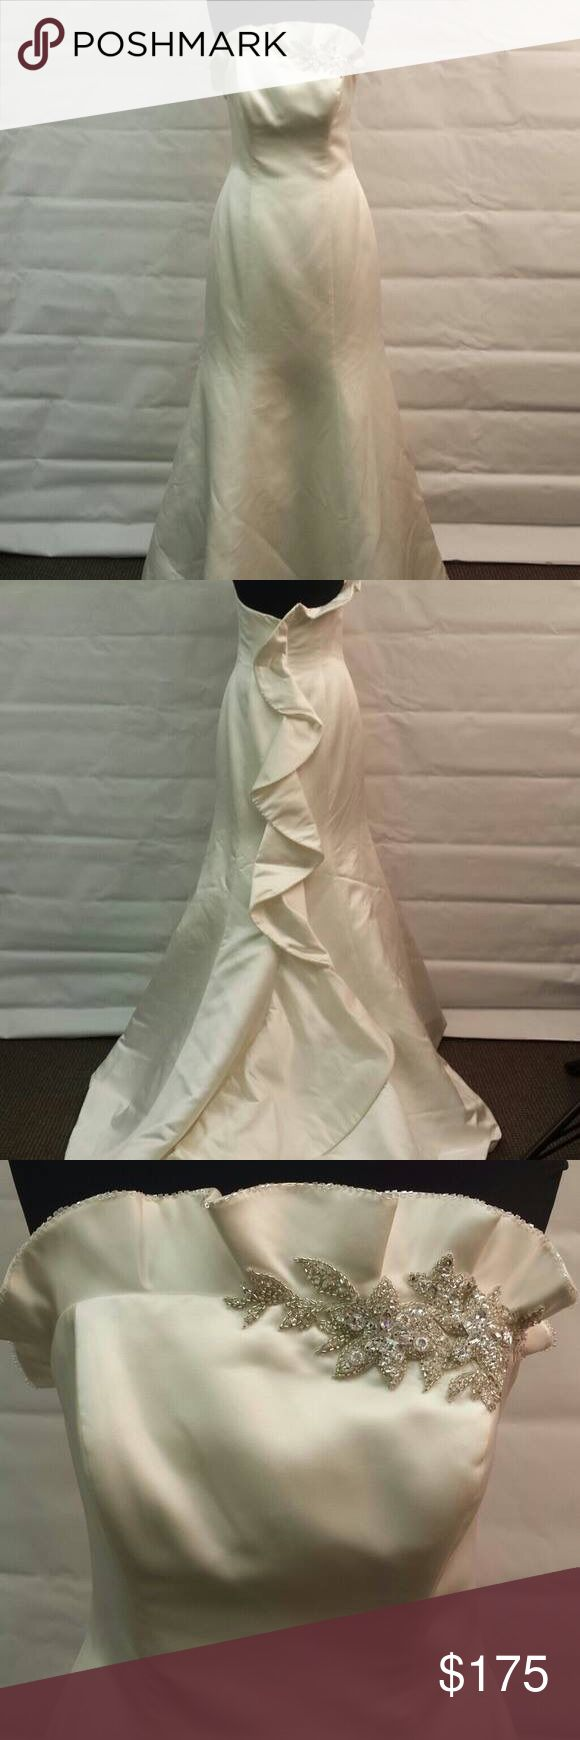 Galina Signature Wedding Gown Size 10. Ivory satin. Strapless gown with ruffle and rhinestone detailing. Gently worn. Will include a raw-edge chapel-length veil. David's Bridal Dresses Wedding